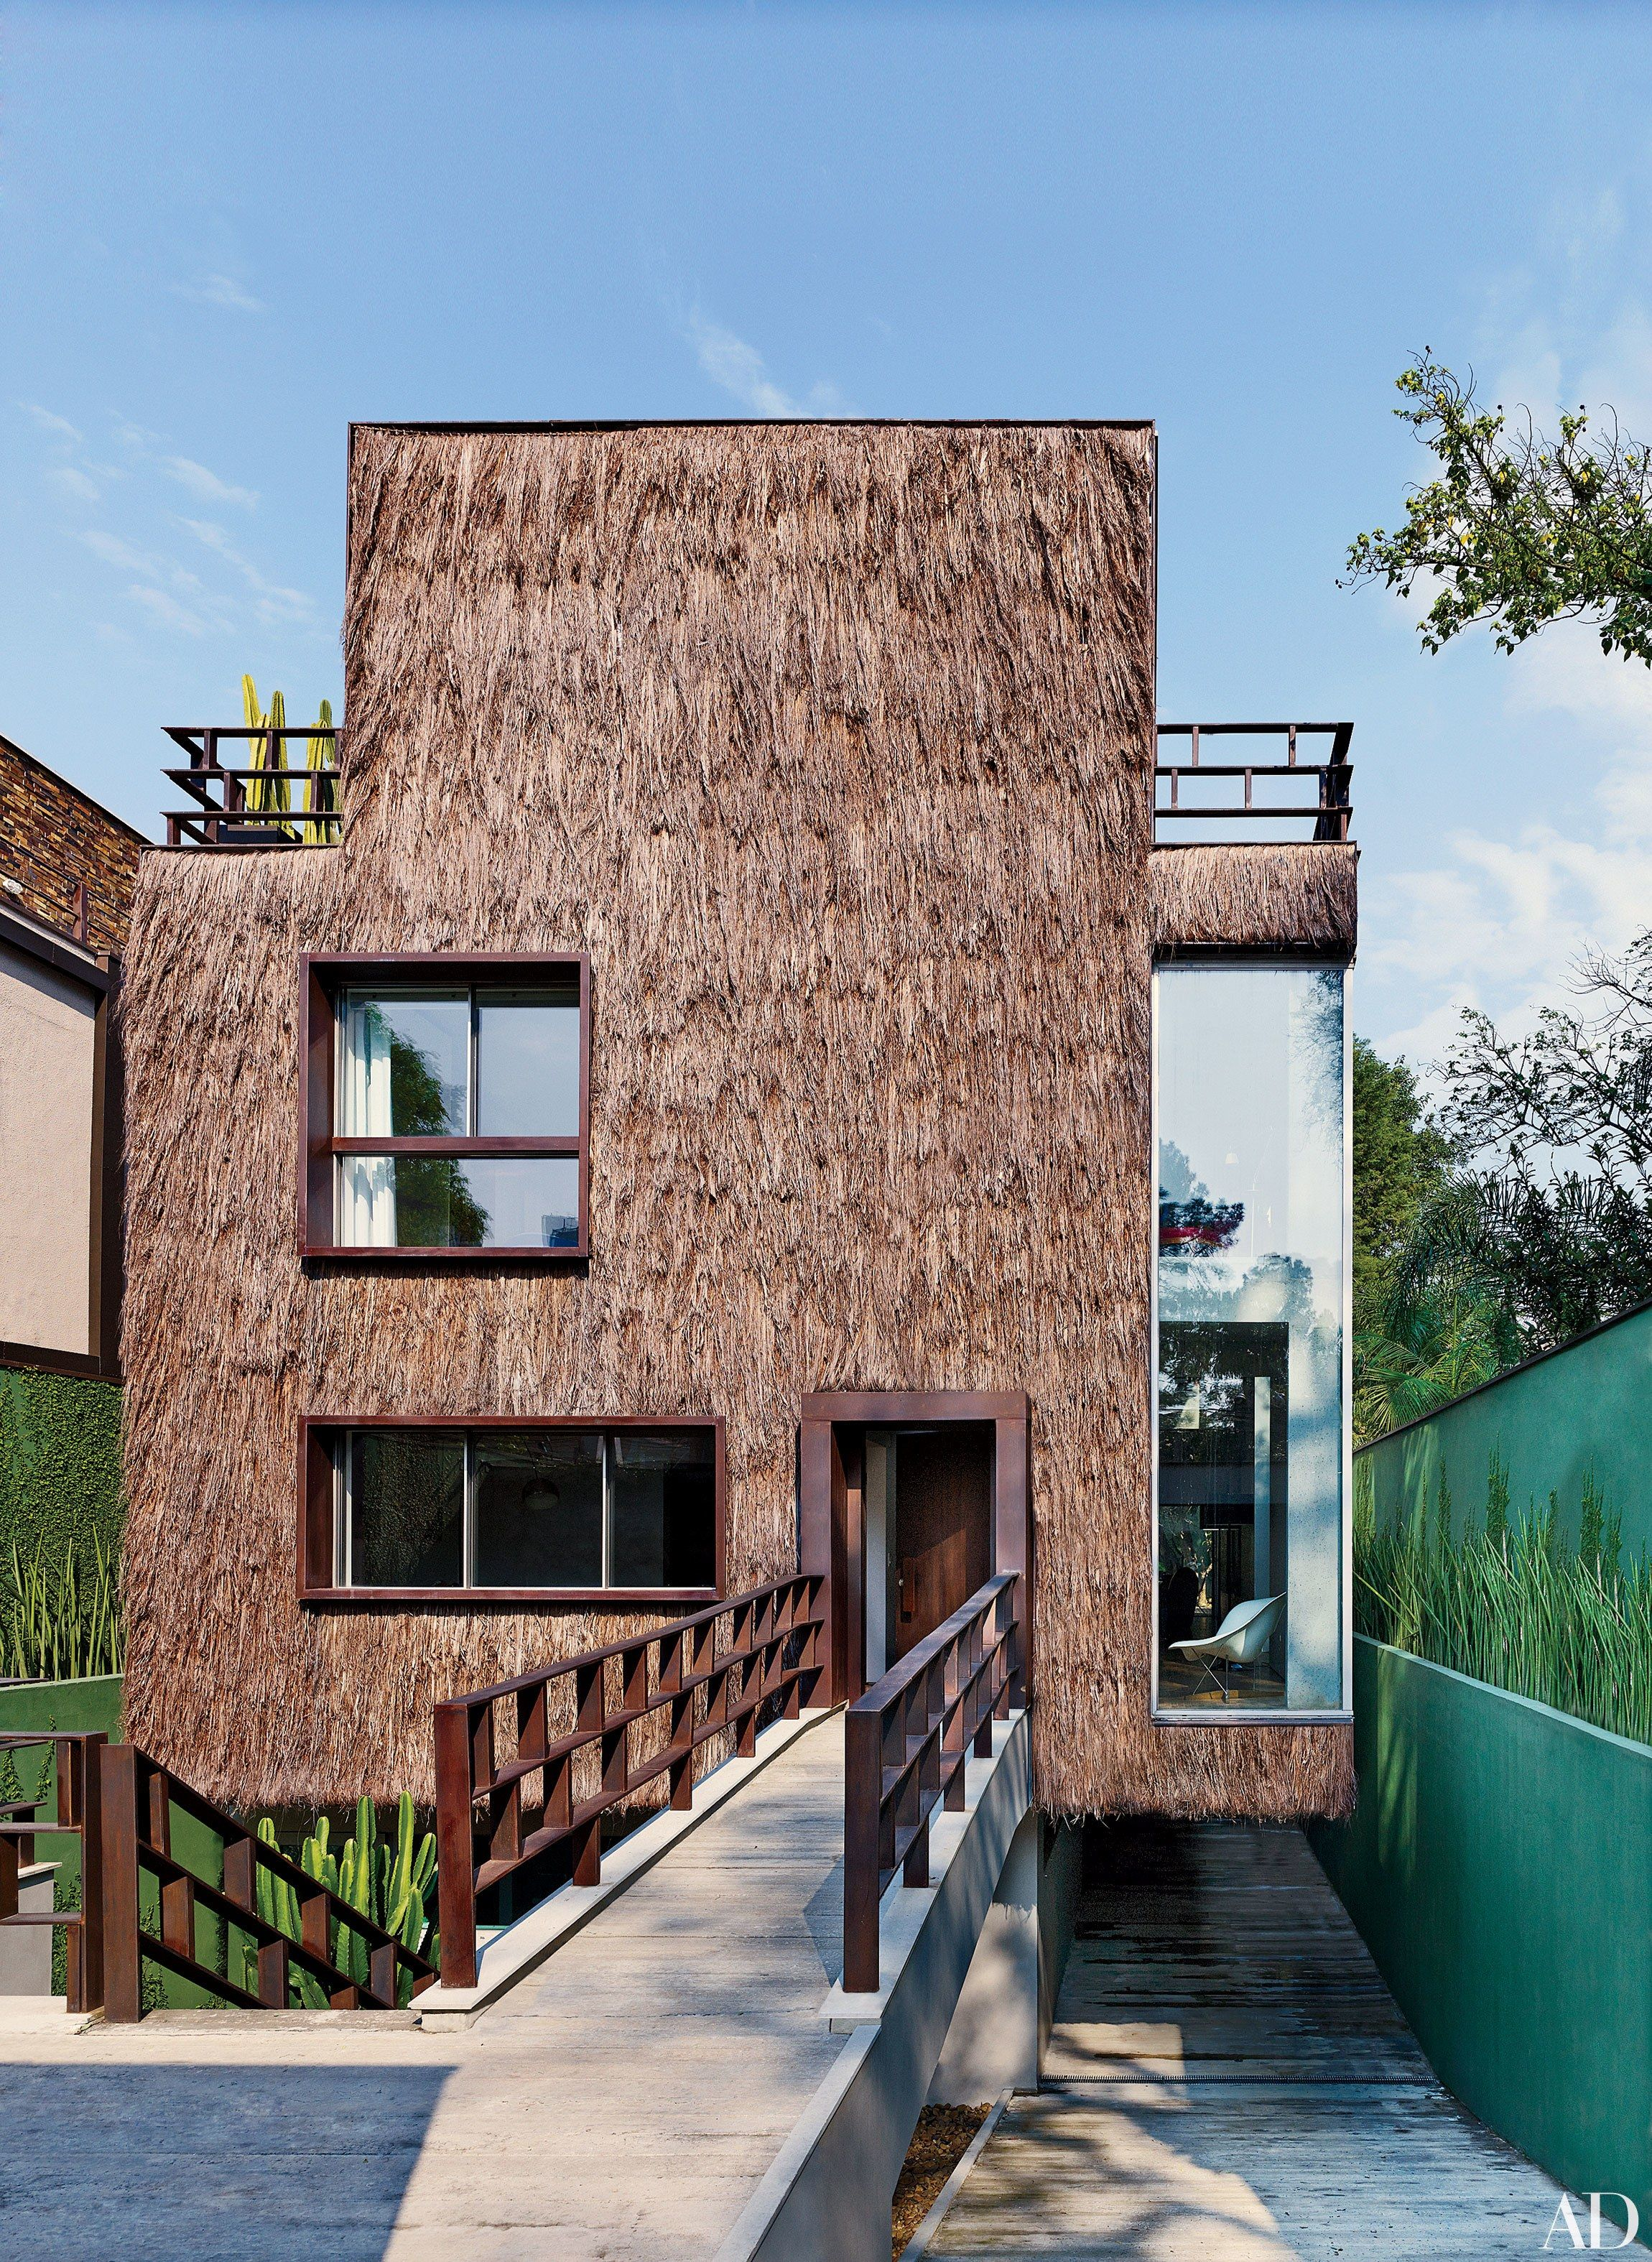 Take a Closer Look at These 7 Textured Home Exteriors from the AD Archives Photos: the Campana brothers, Humberto and Fernando, designed this São Paulo home clad entirely in shaggy piaçava-palm straw | Architectural Digest